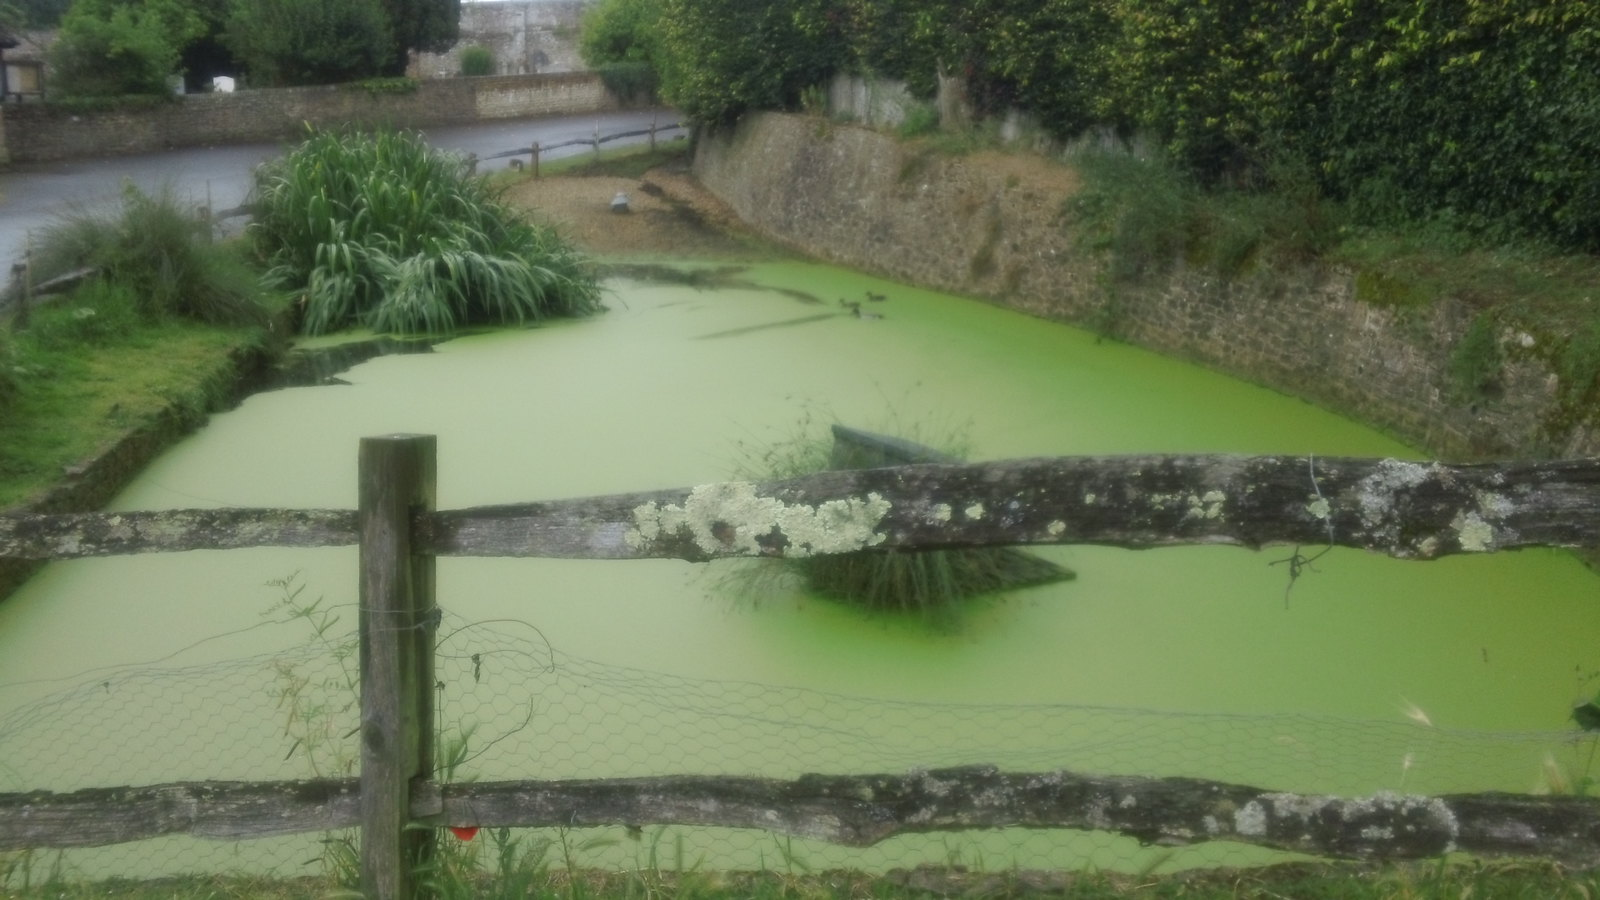 Ducks in pea-green soup actually the pond at Peper Harrow